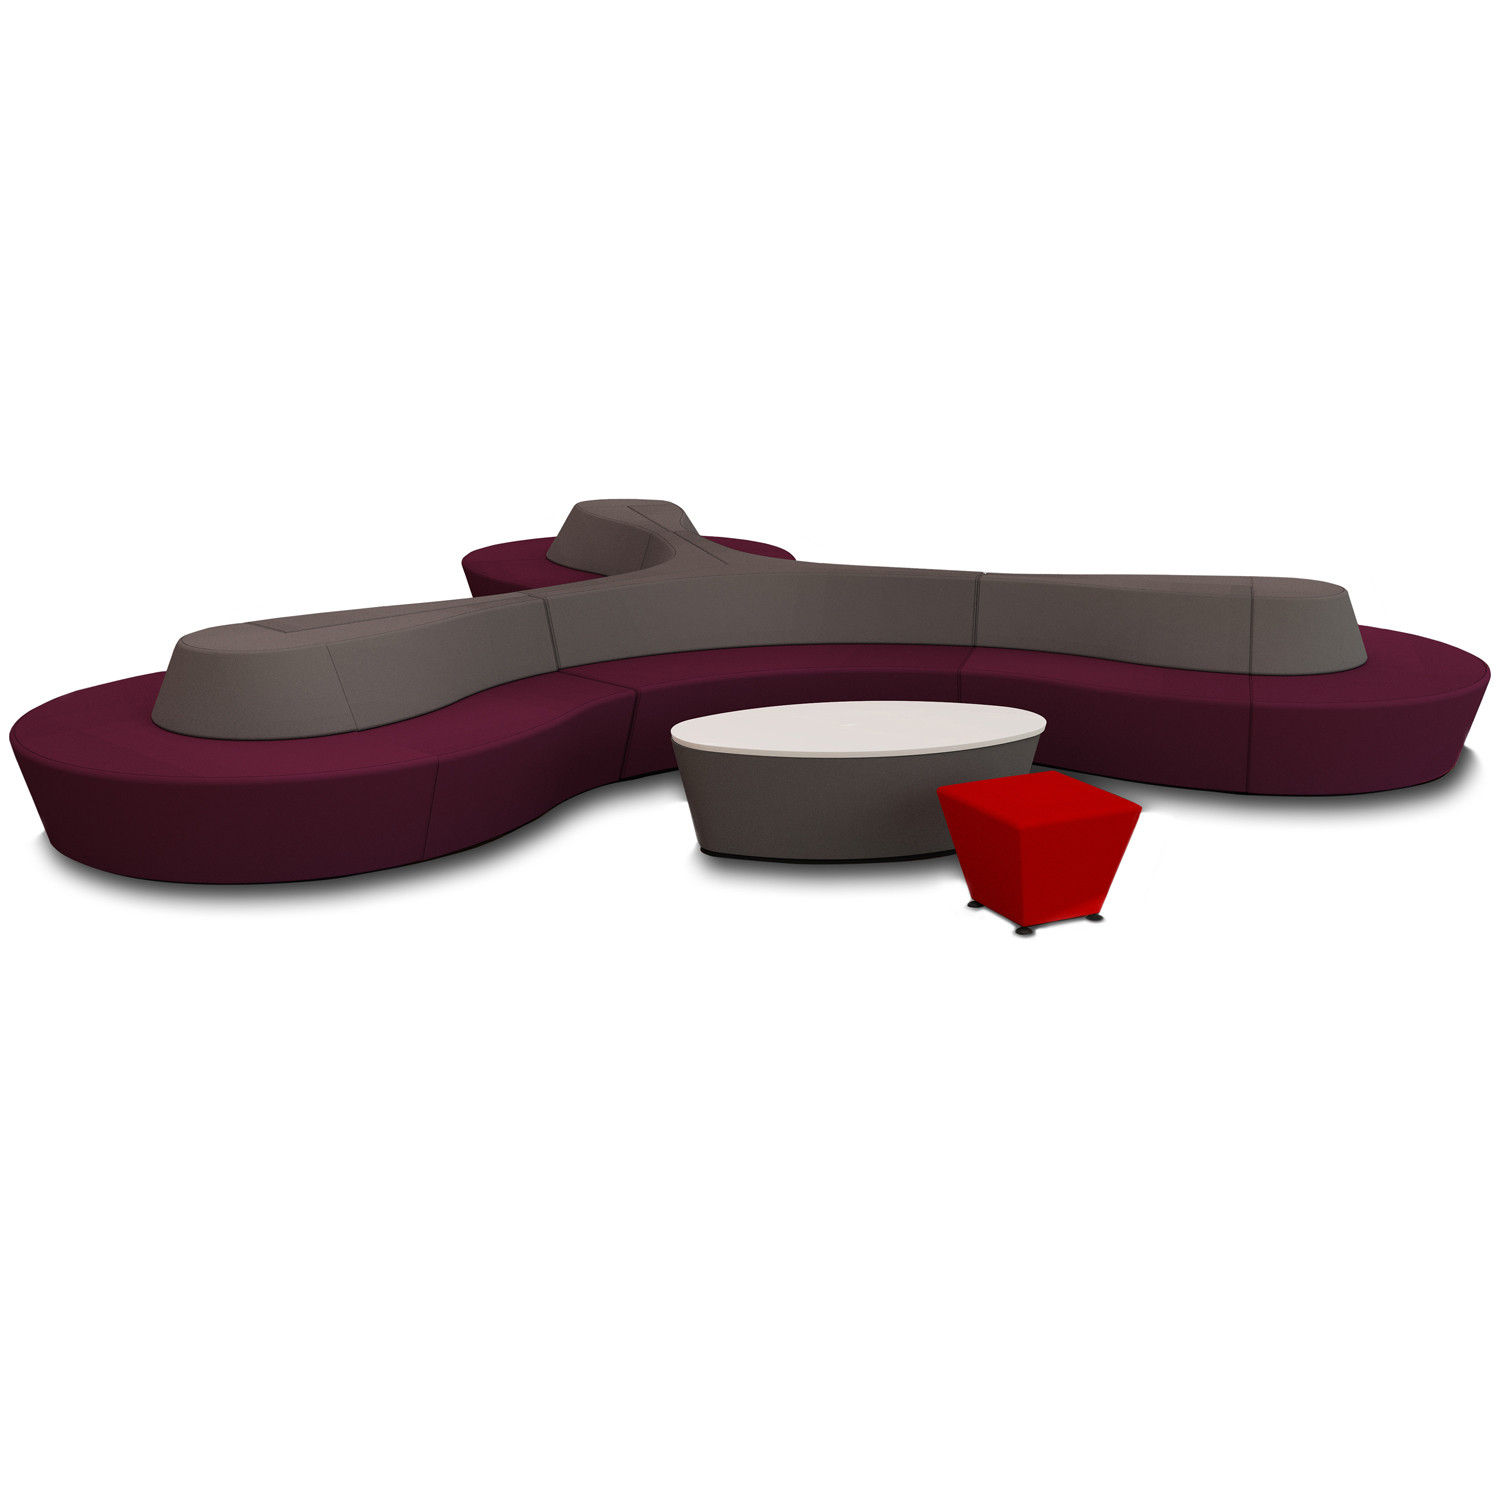 Horizon Modular Soft Seating